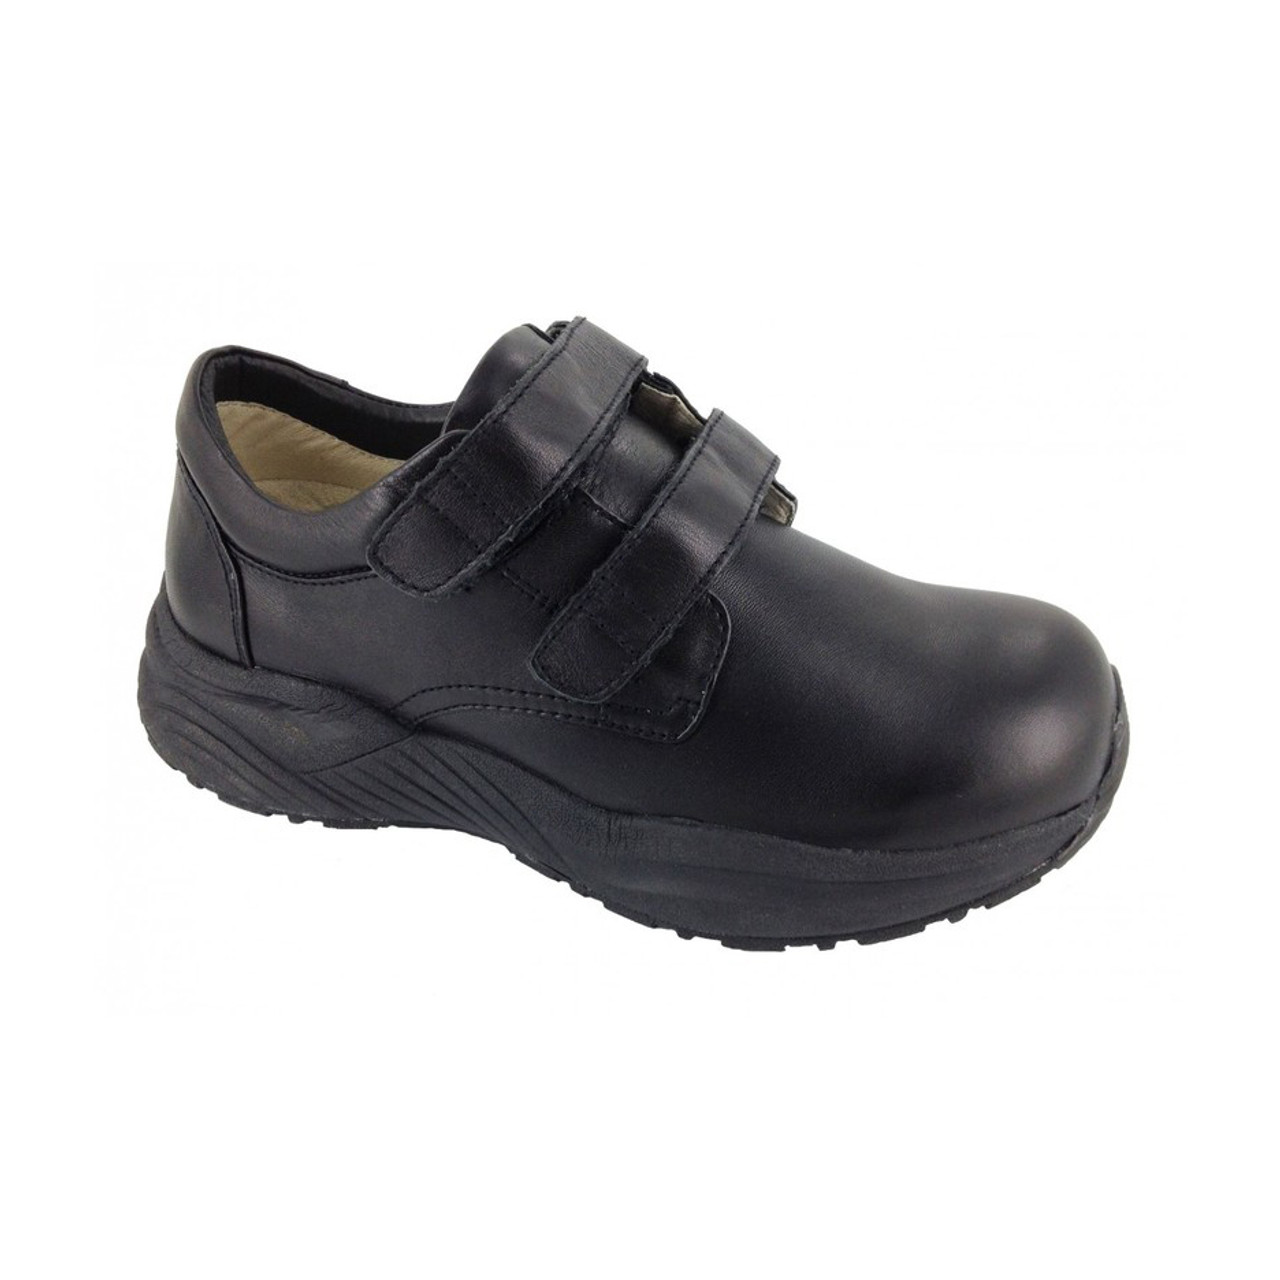 ed482490767 Black Touch Closure Orthopedic Shoes For Work For Women